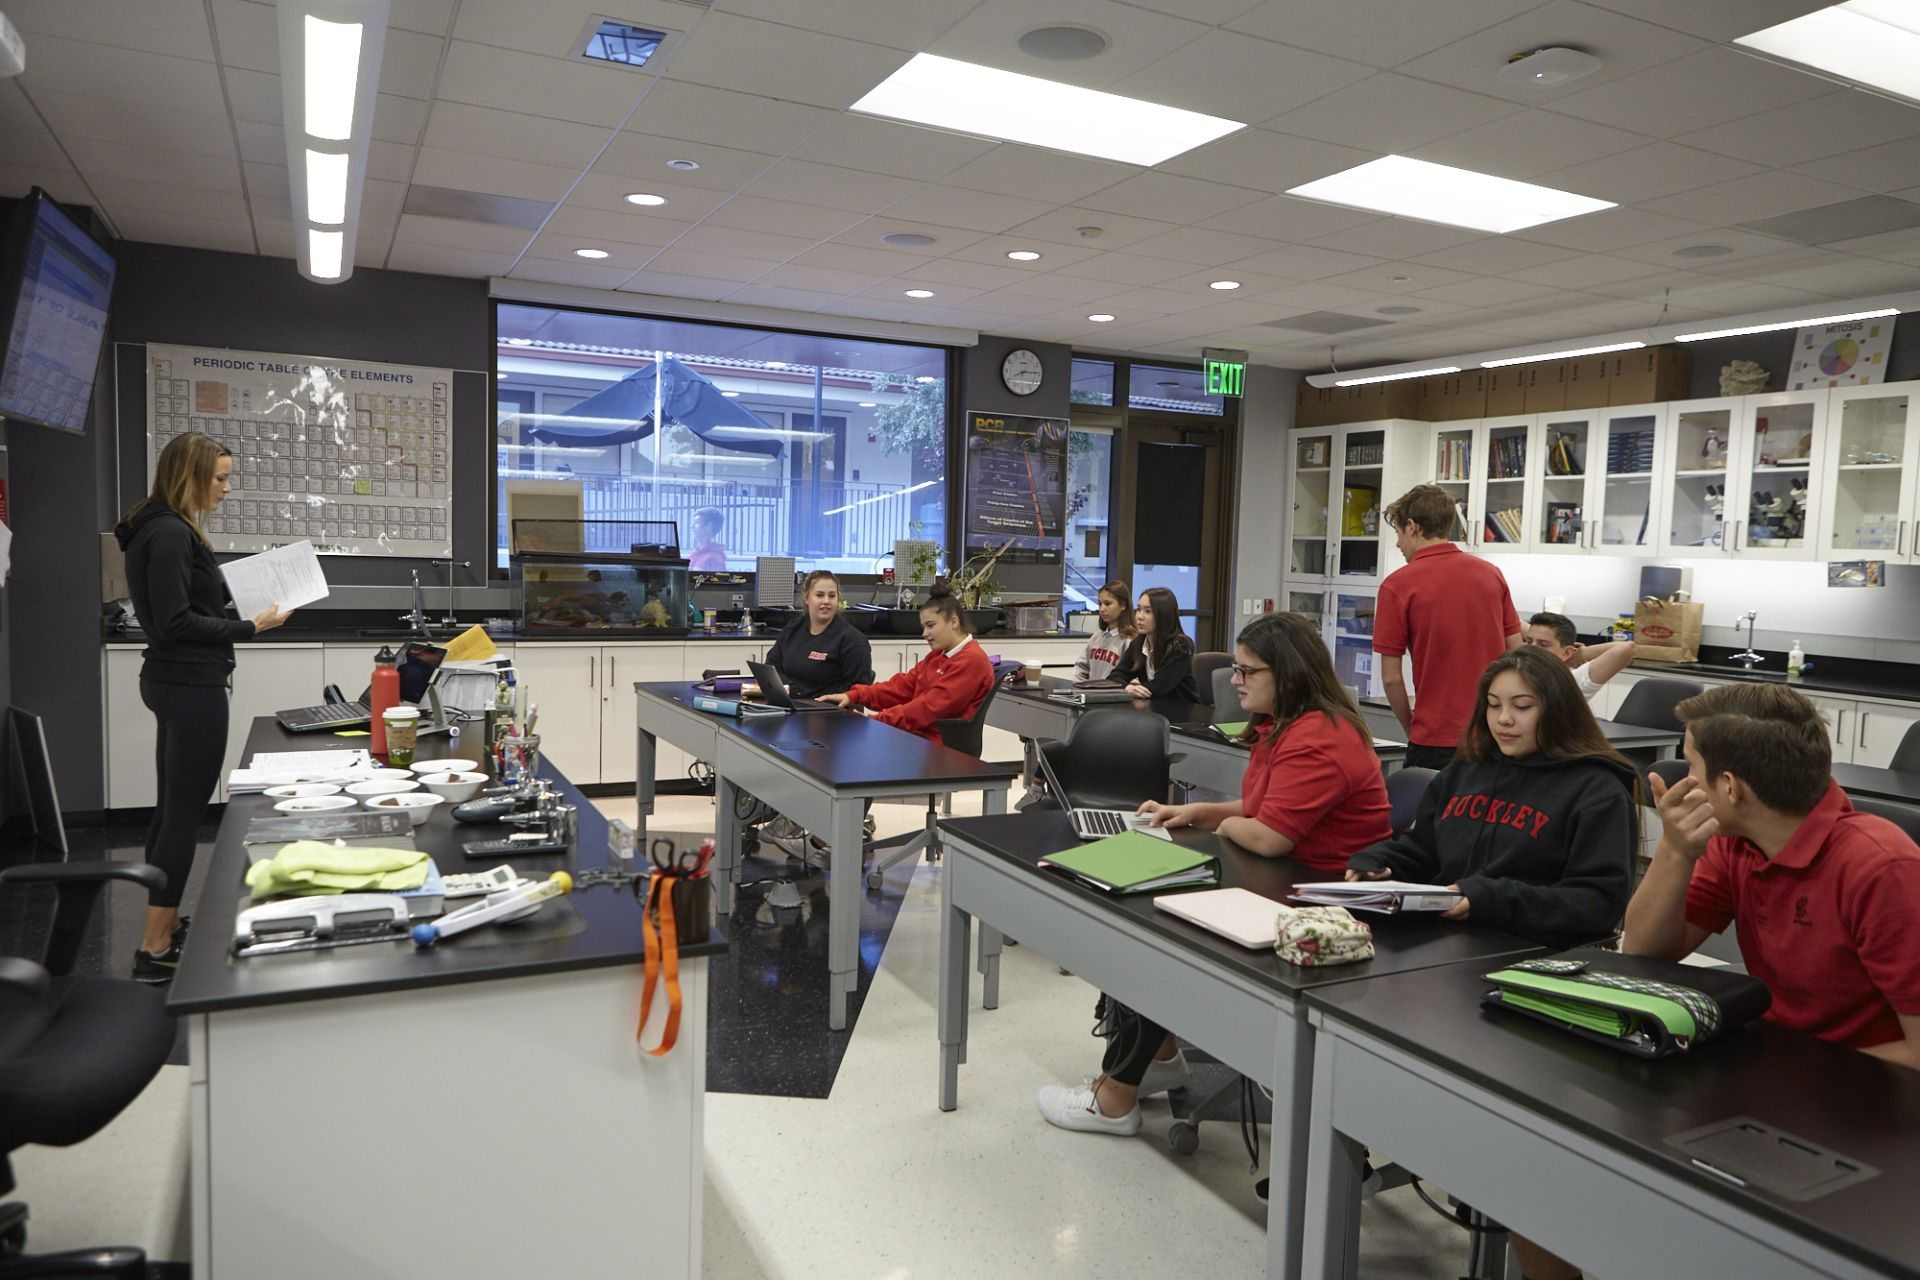 The lower level of The Math and Science Building includes Upper School physics, chemistry, and biology classrooms, as well as Middle School physical and earth science classrooms.